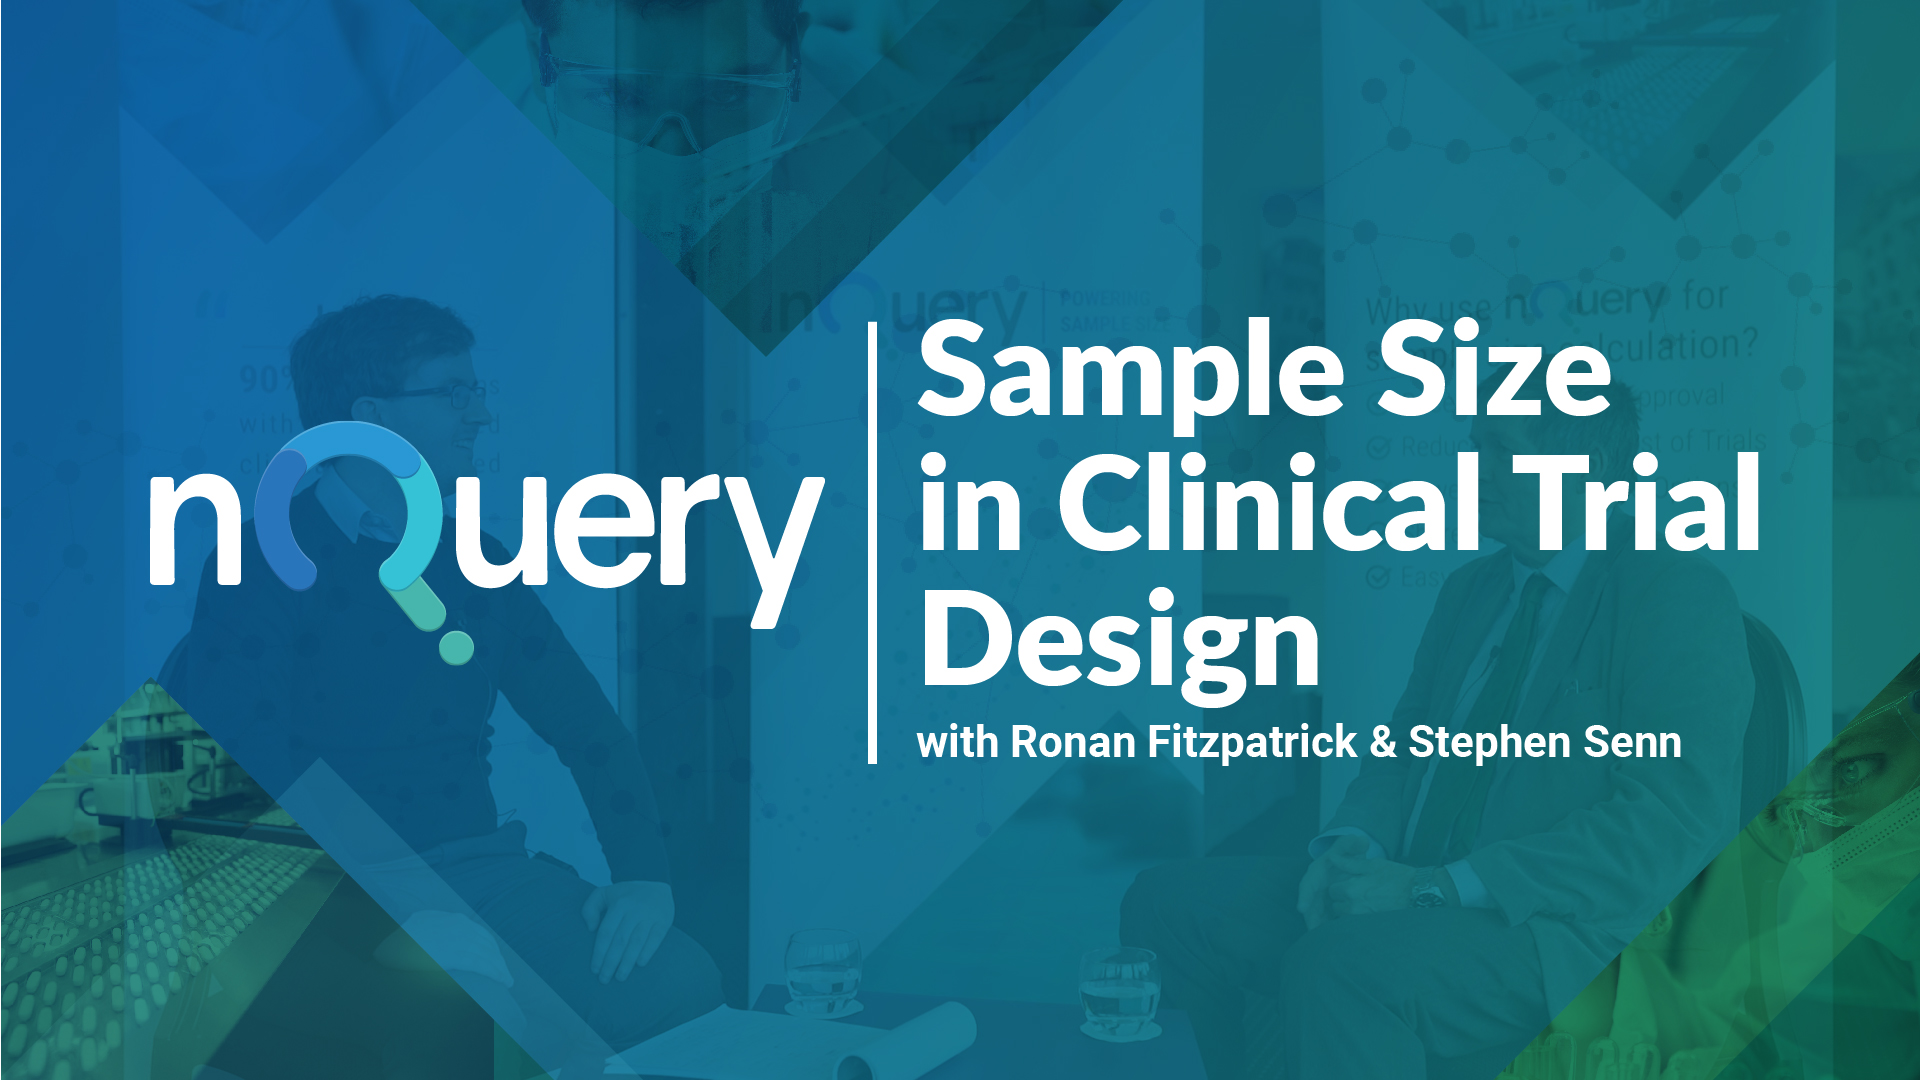 1_SampleSizeInClinicalTrialDesign_2